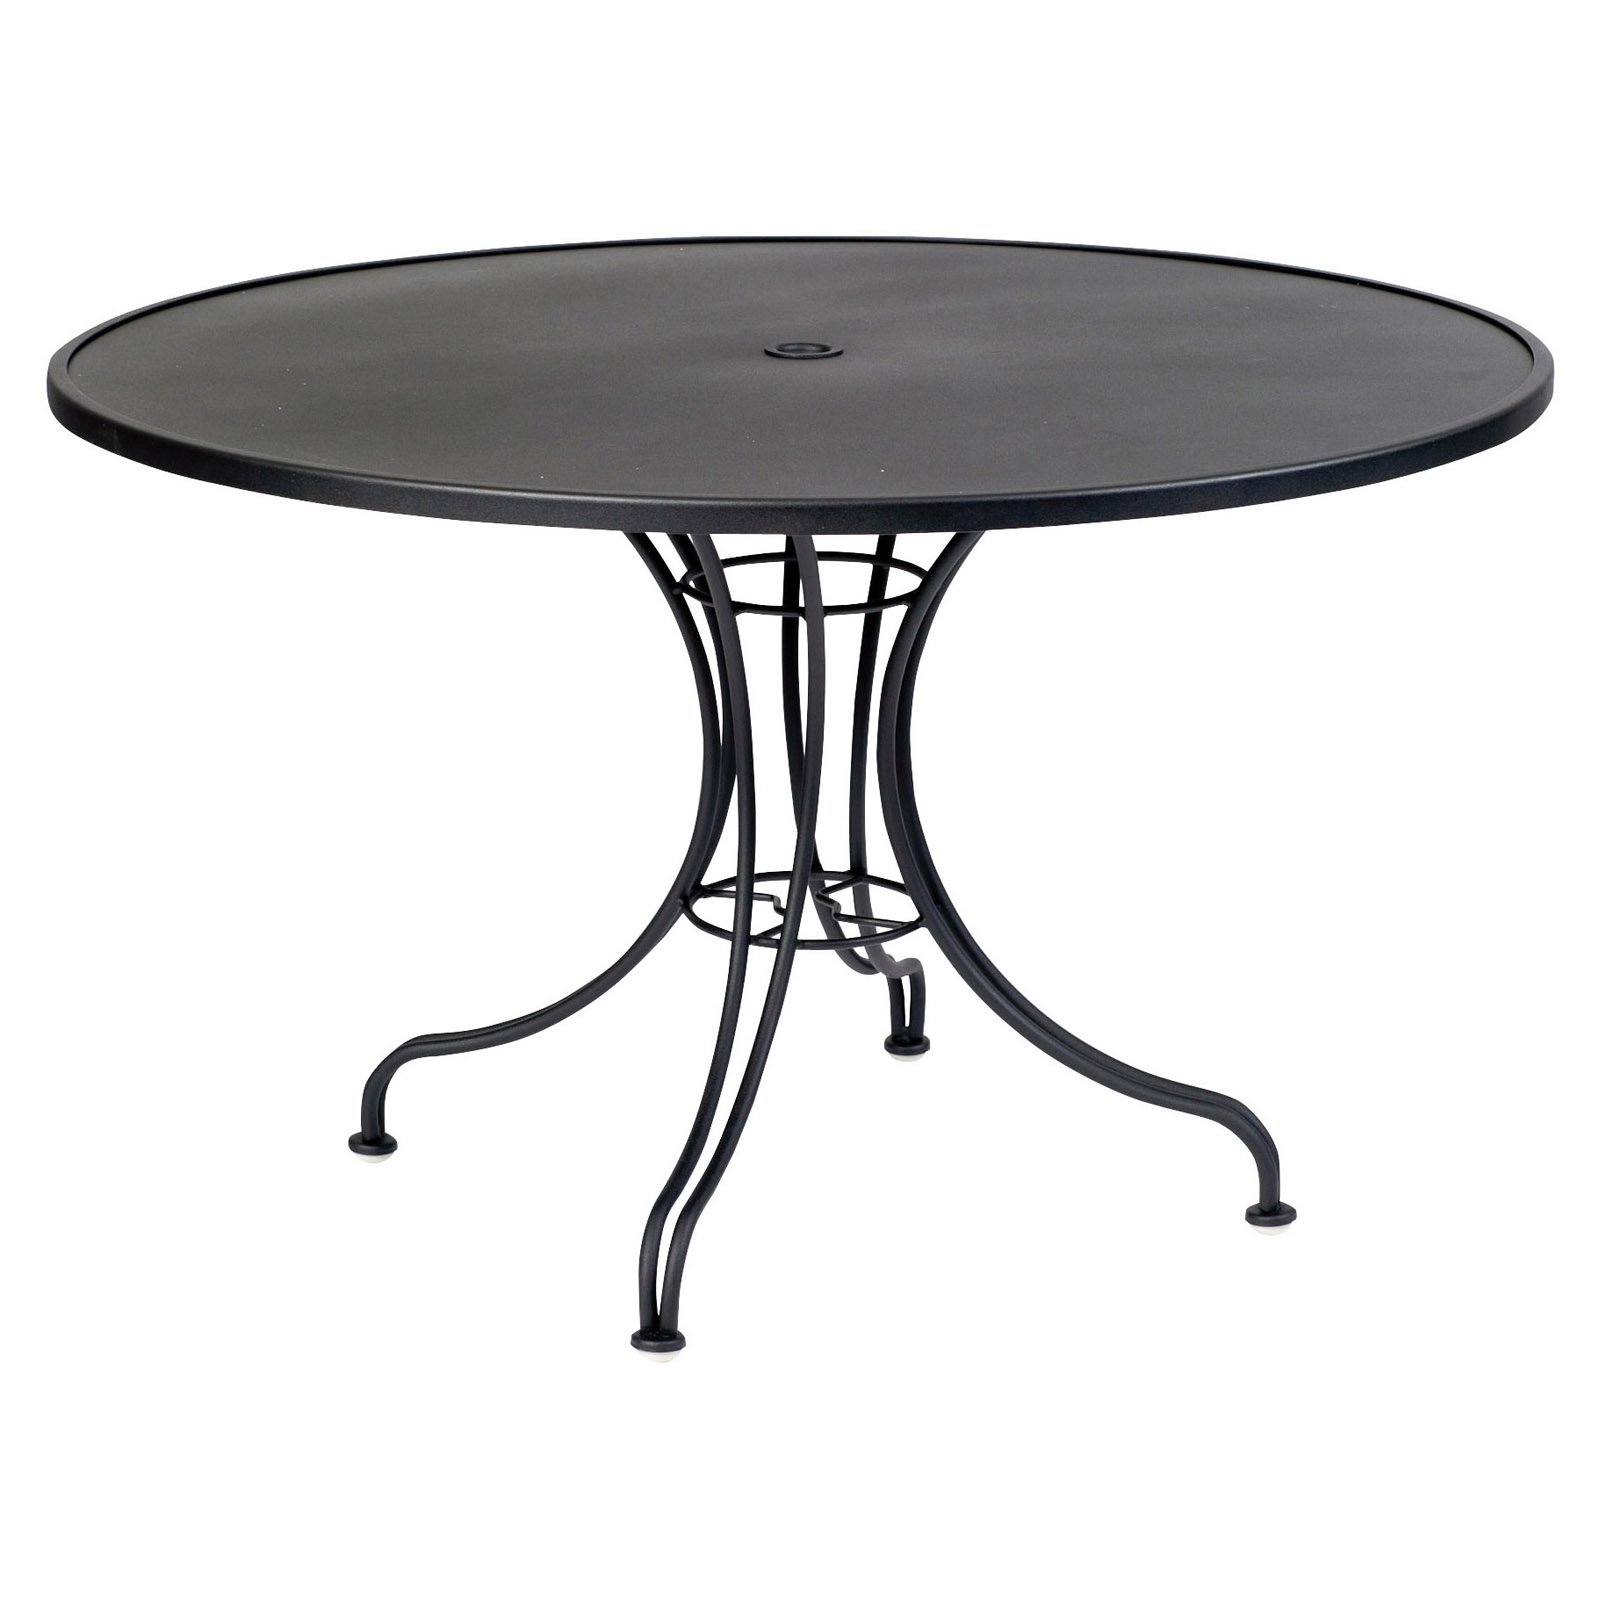 Woodard Solid Top Round Patio Dining Table With Umbrella Hole In 2020 Round Patio Table Patio Dining Table Outdoor Patio Furniture Sets Round patio table with umbrella hole